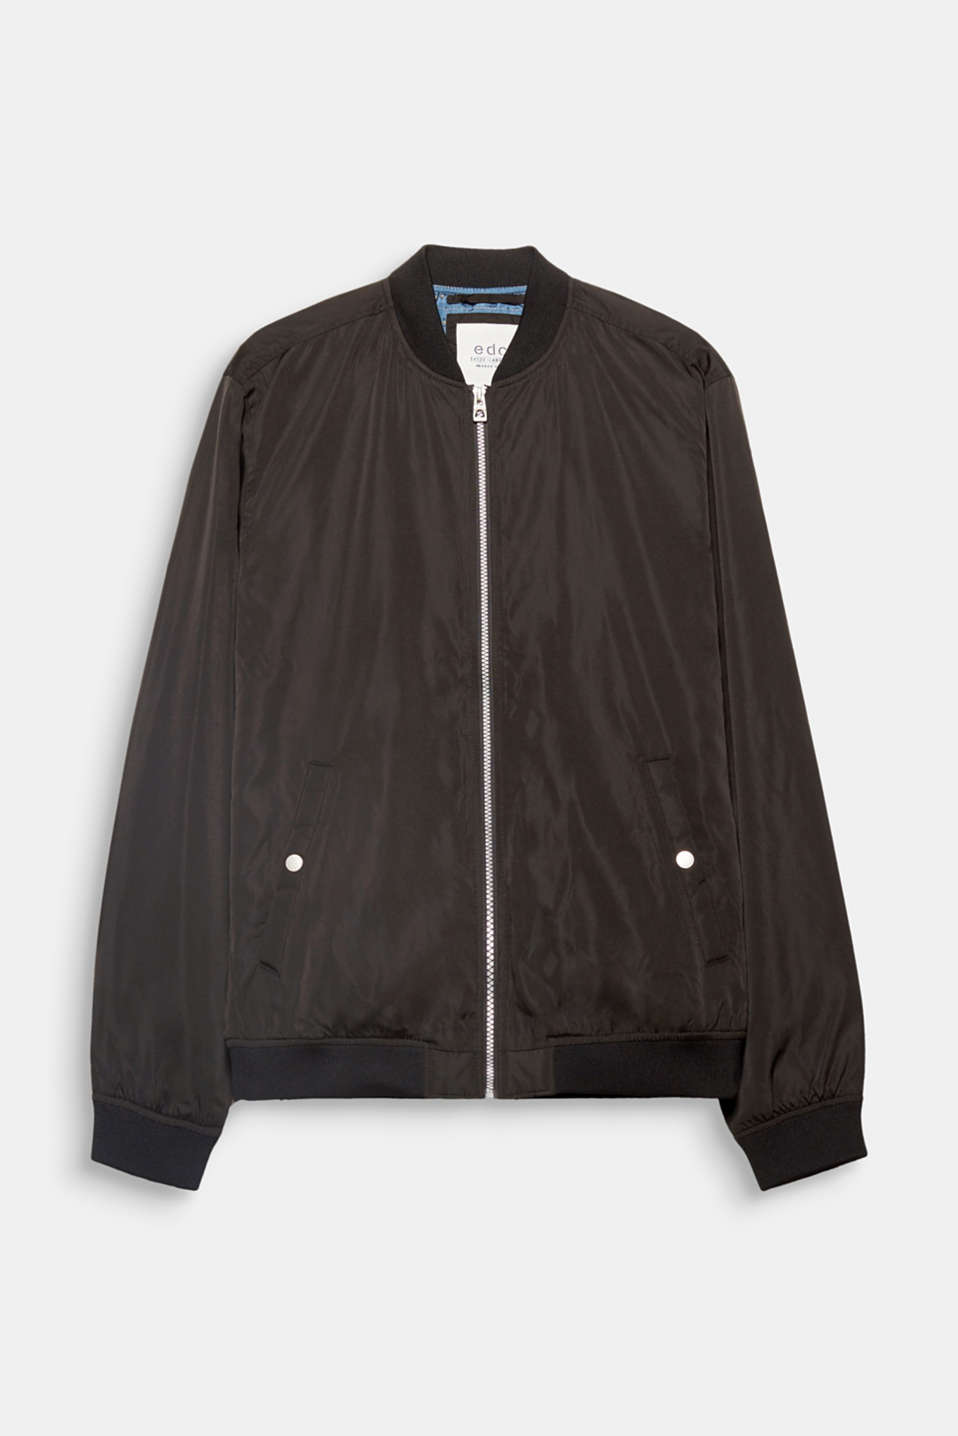 The lightweight nylon and tonal ribbed cuffs and waistband give this bomber jacket its sporty, urban street look.